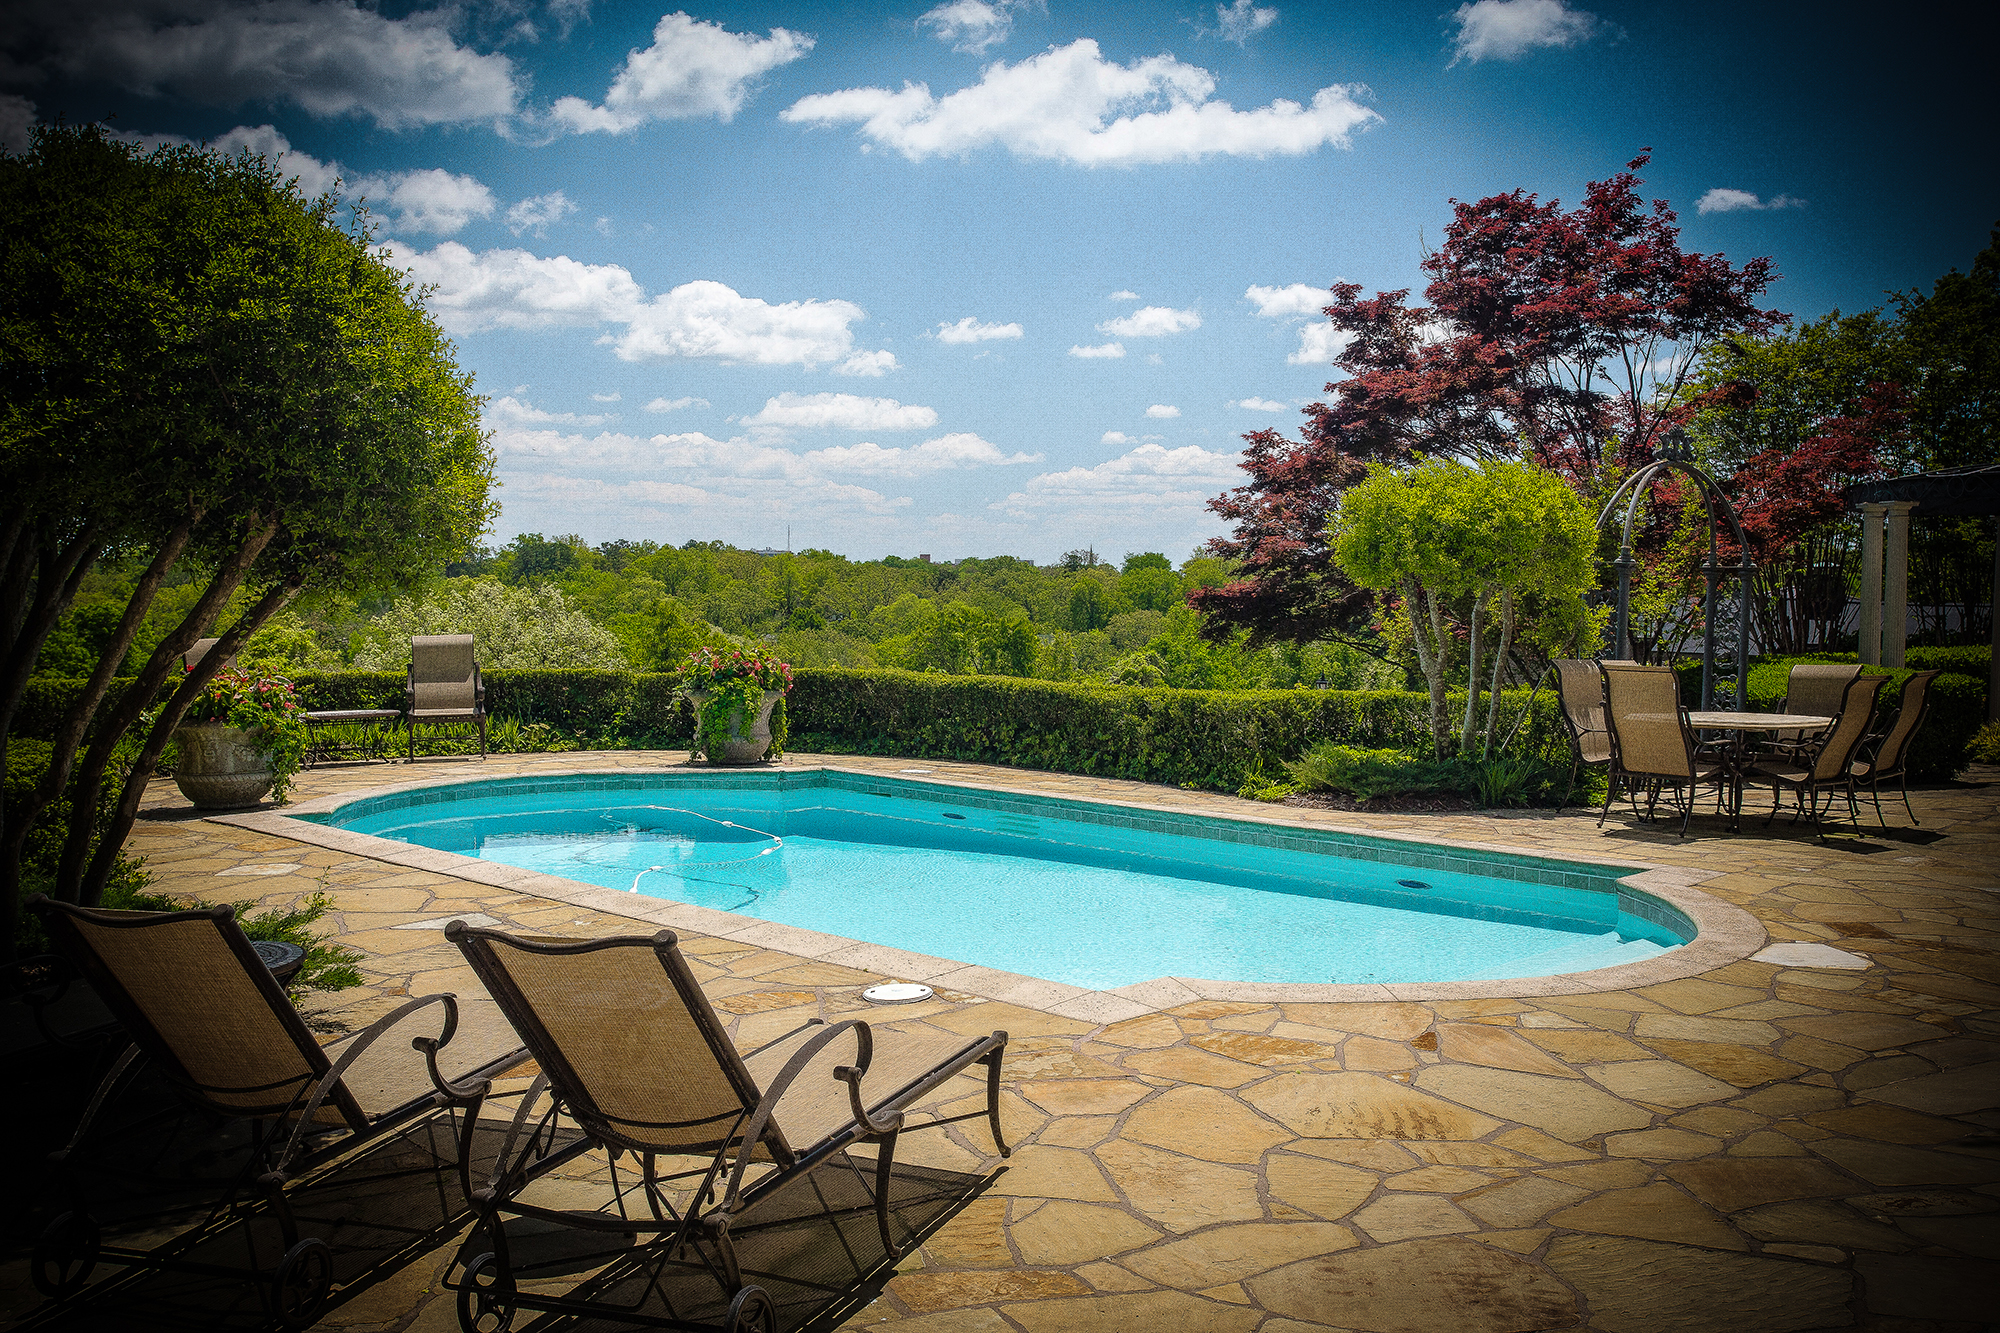 Pool Amp Water Features David Chappell Landscape